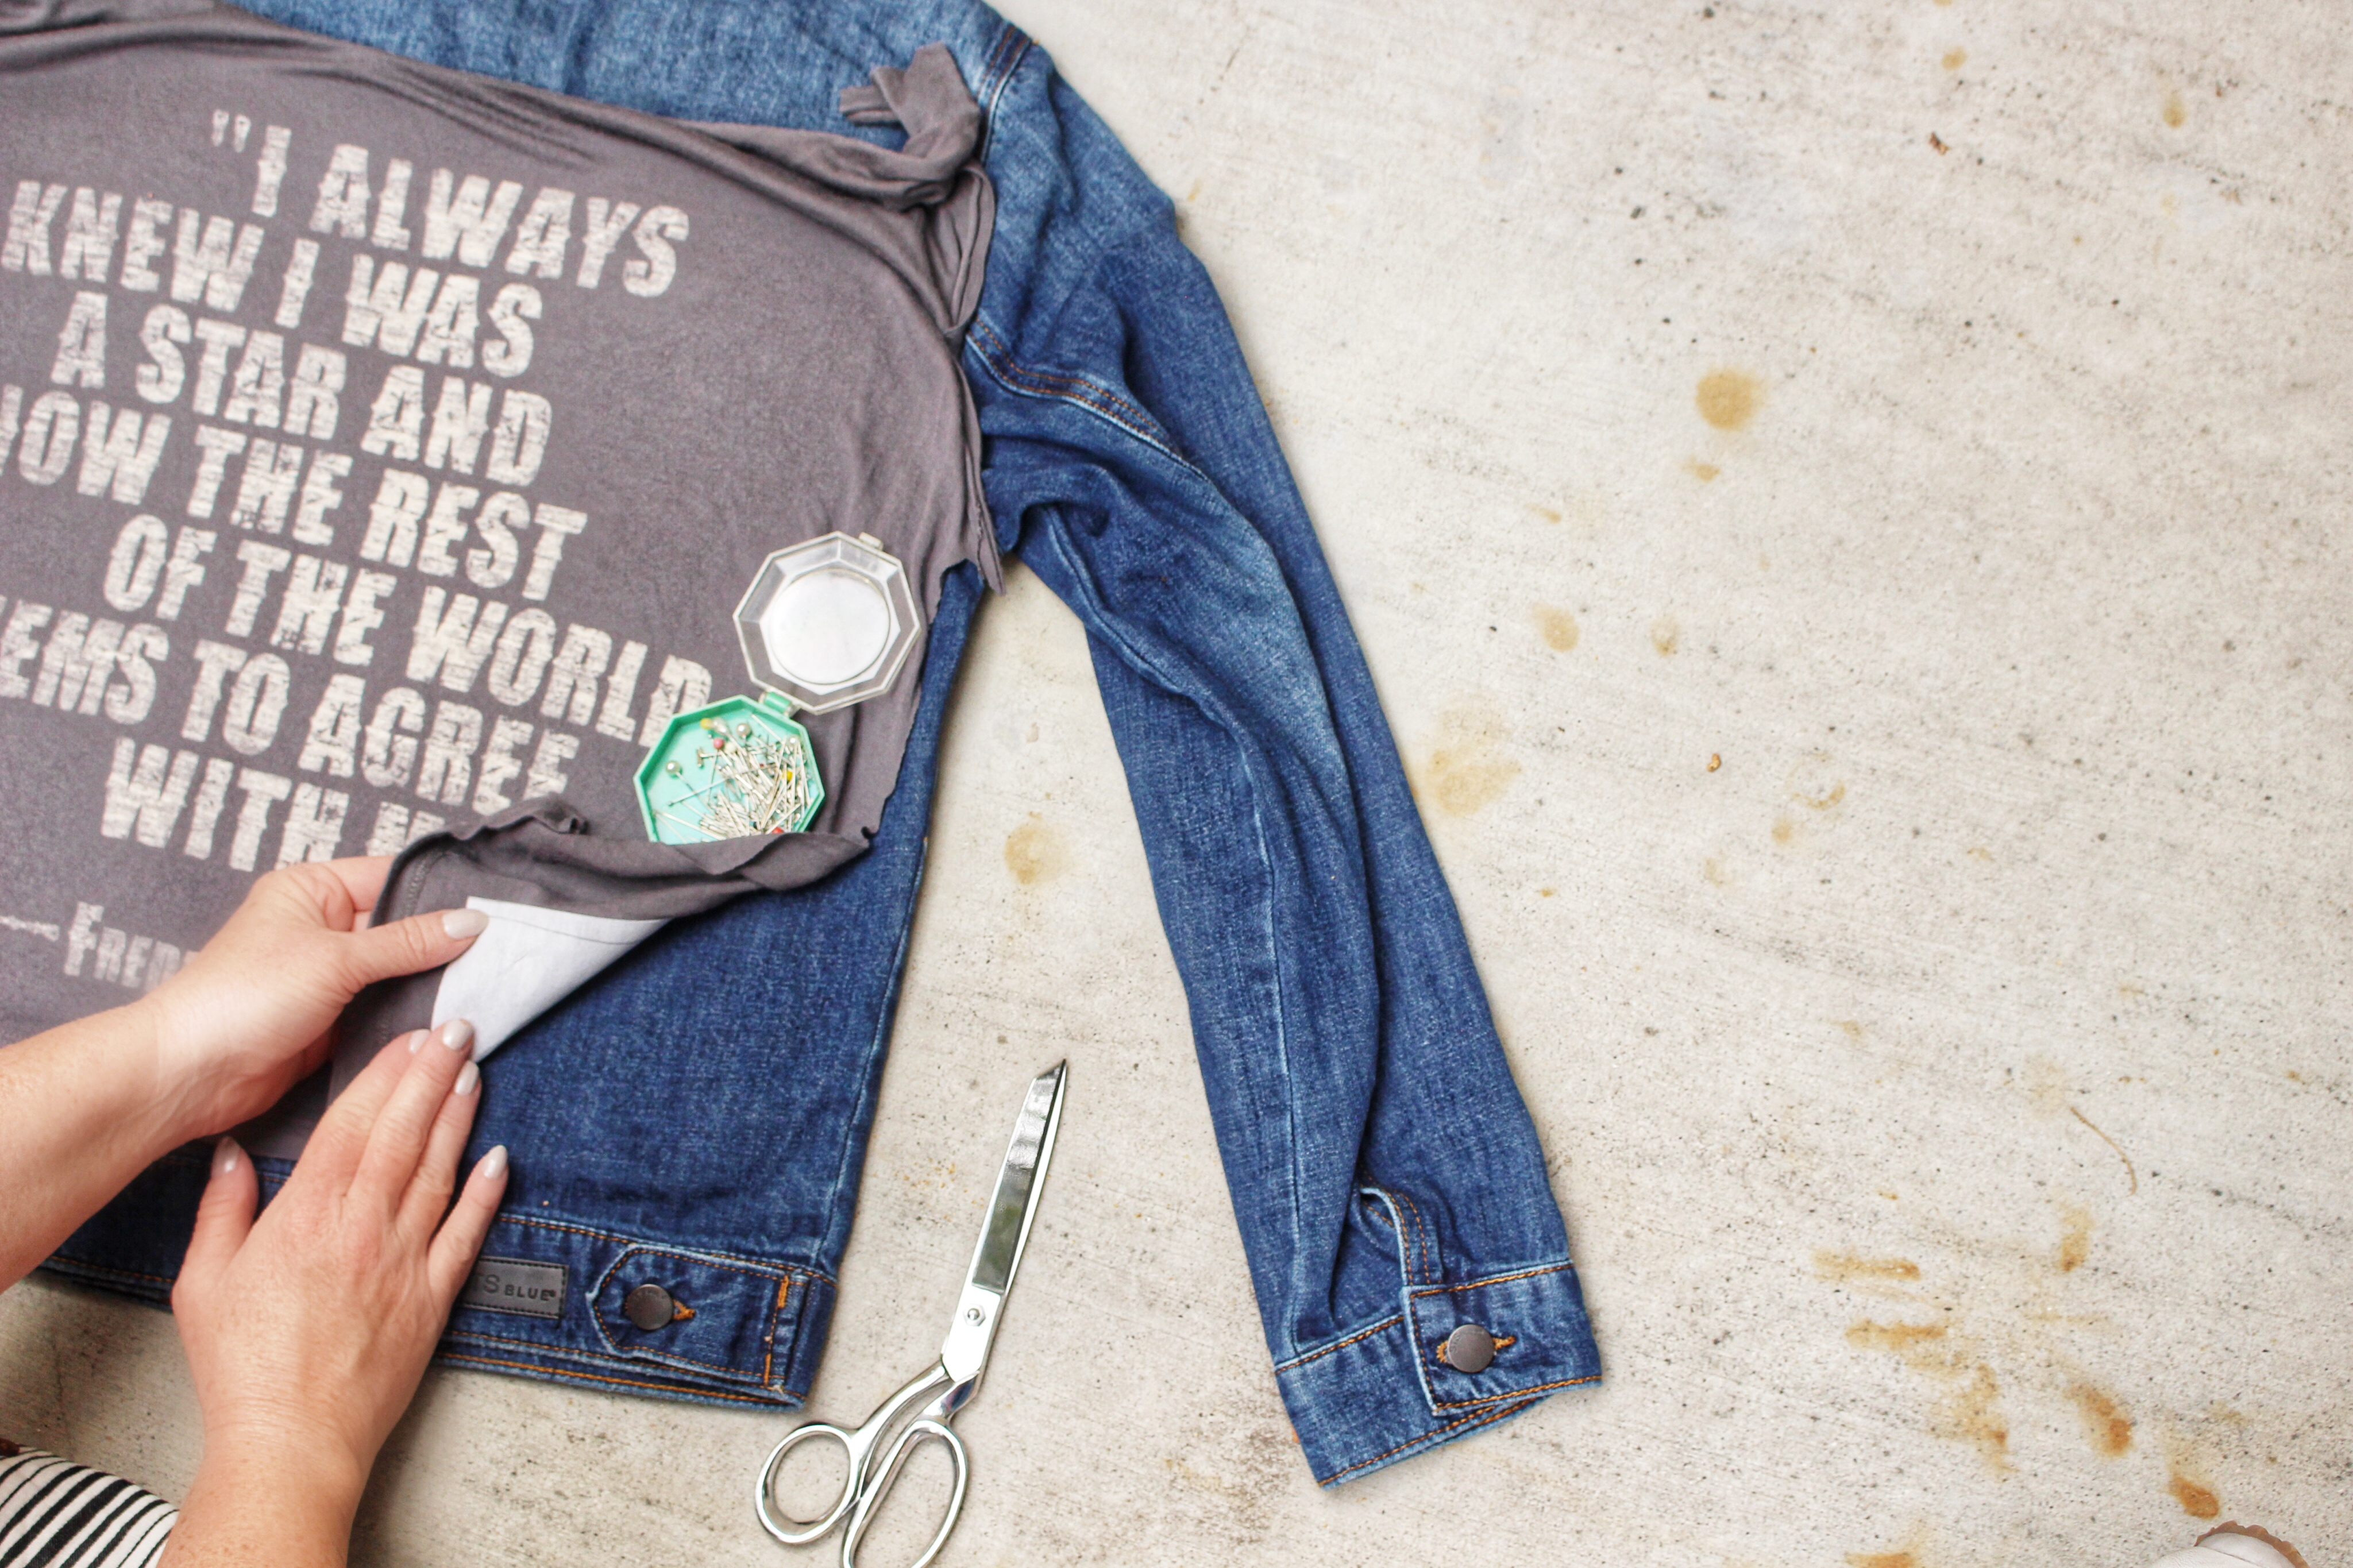 How to Turn a T-Shirt Graphic into a Patch